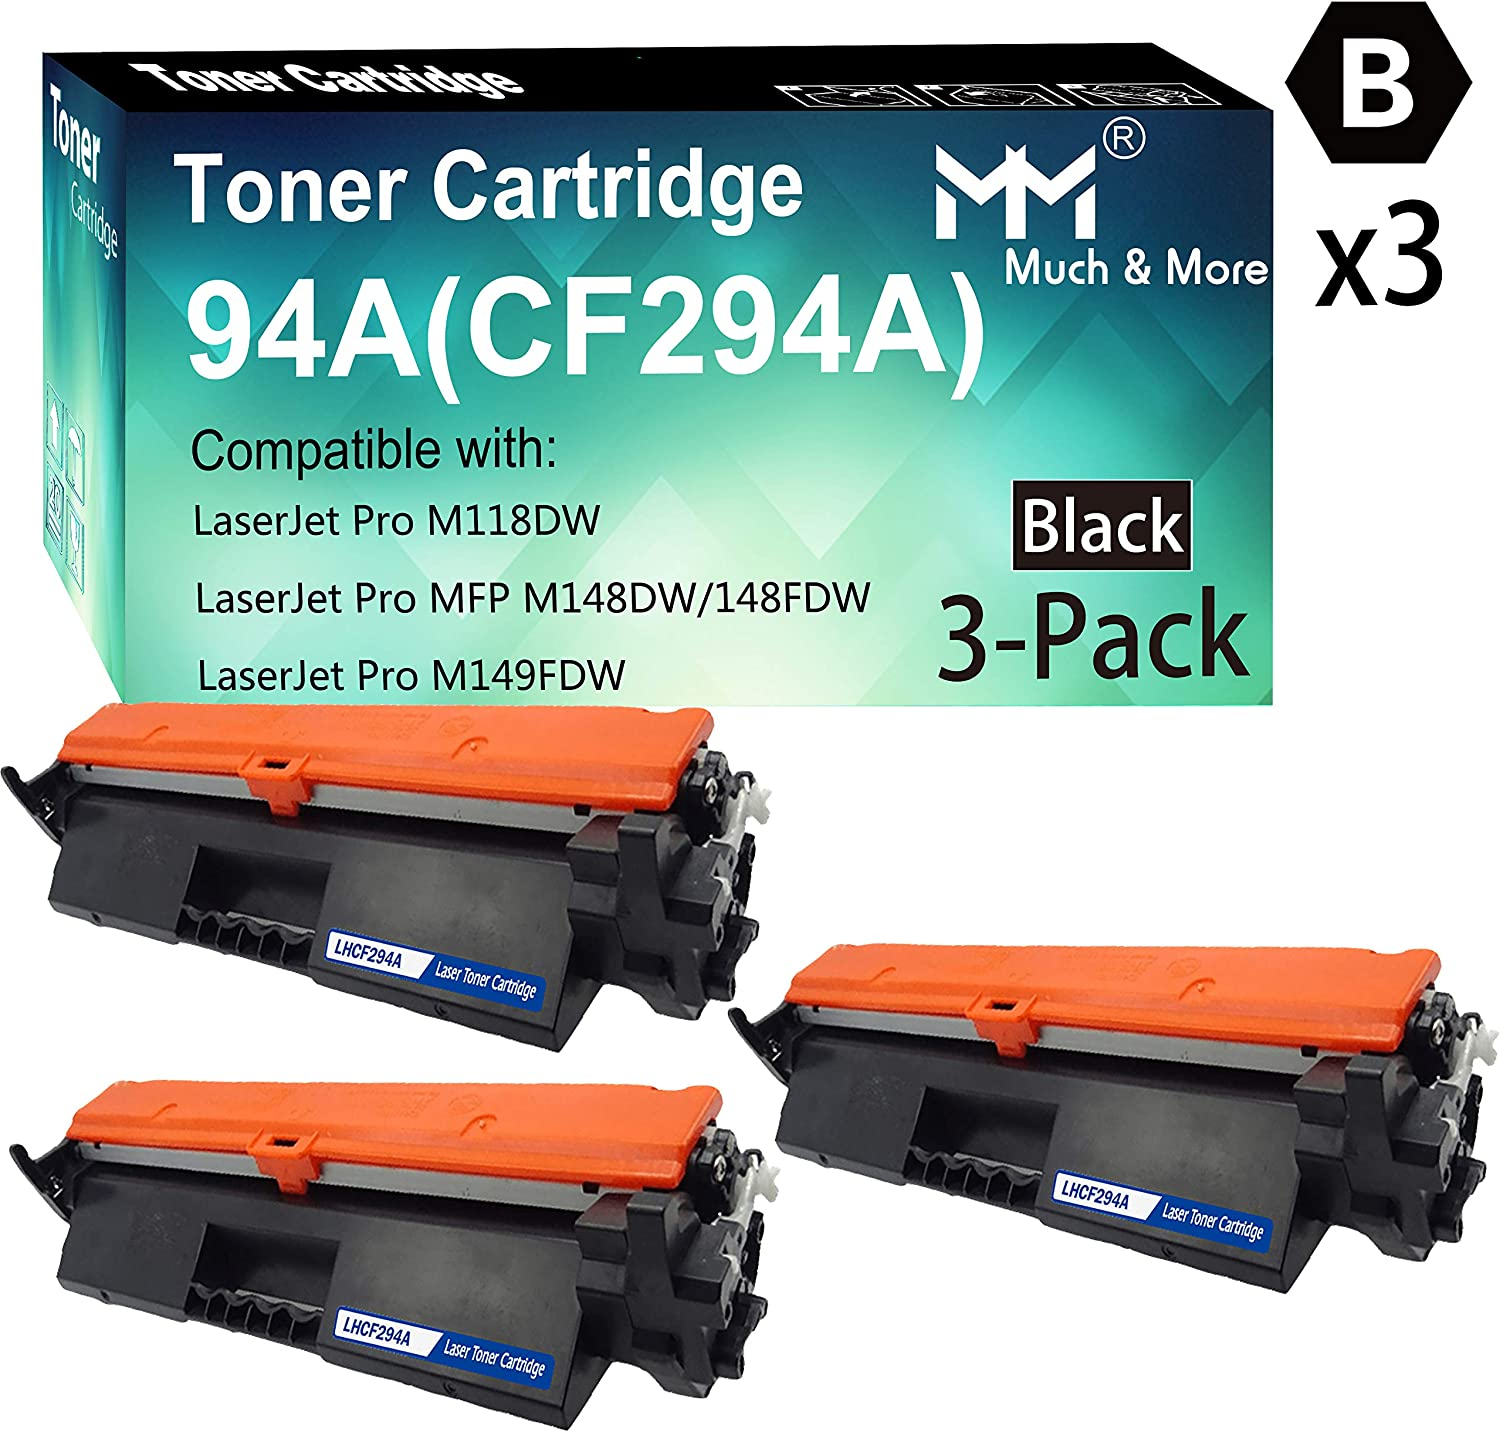 3-Pack Compatible CF294A 294A Toner Cartridge 94A Used for HP Laserjet Pro M118DW MFP-M148DW 148FDW M149FDW M149FDW Printer, Sold by MuchMore